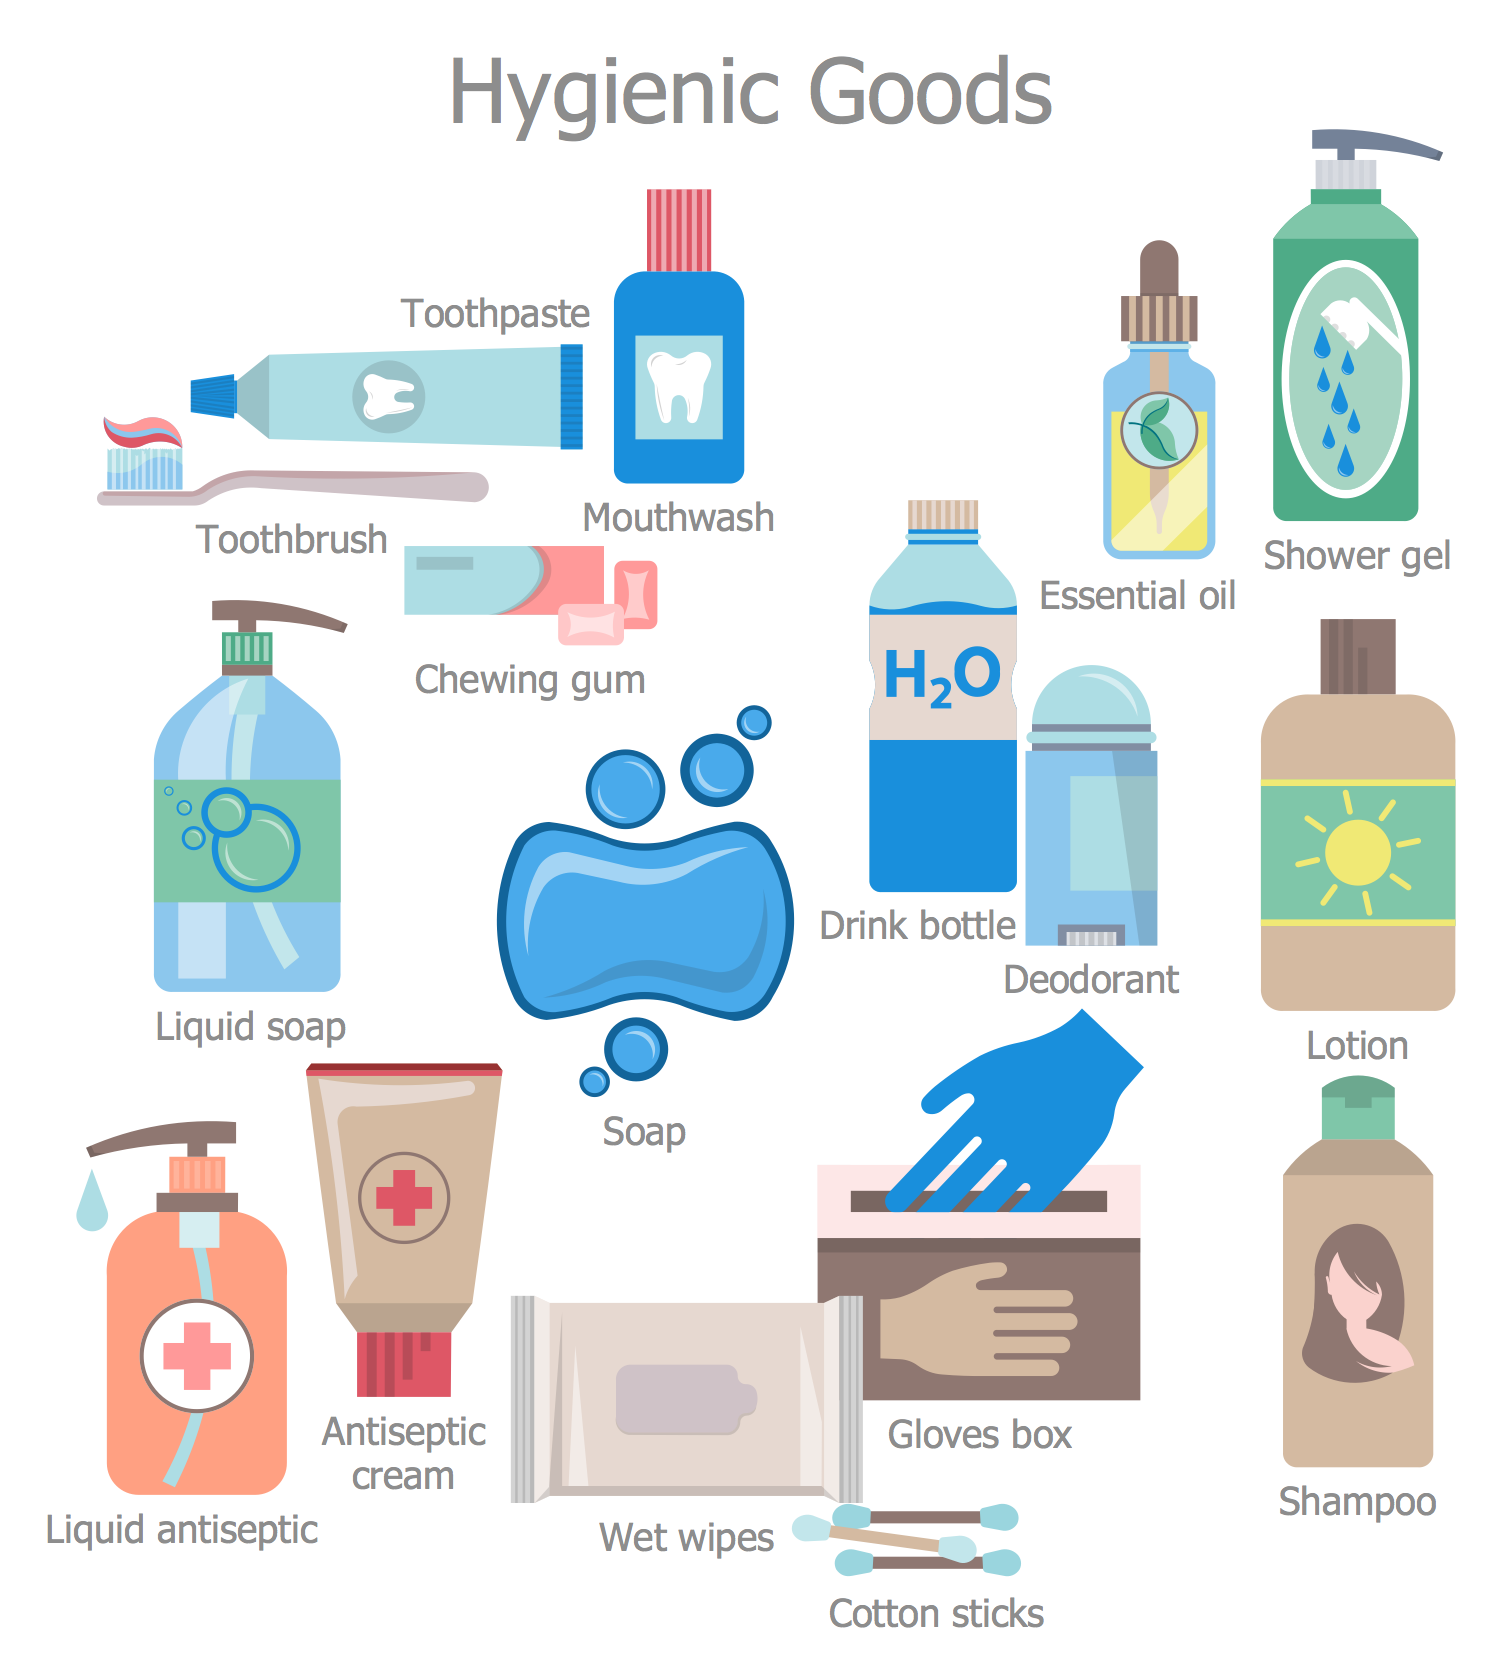 Pharmacy Pictures - Hygienic Goods